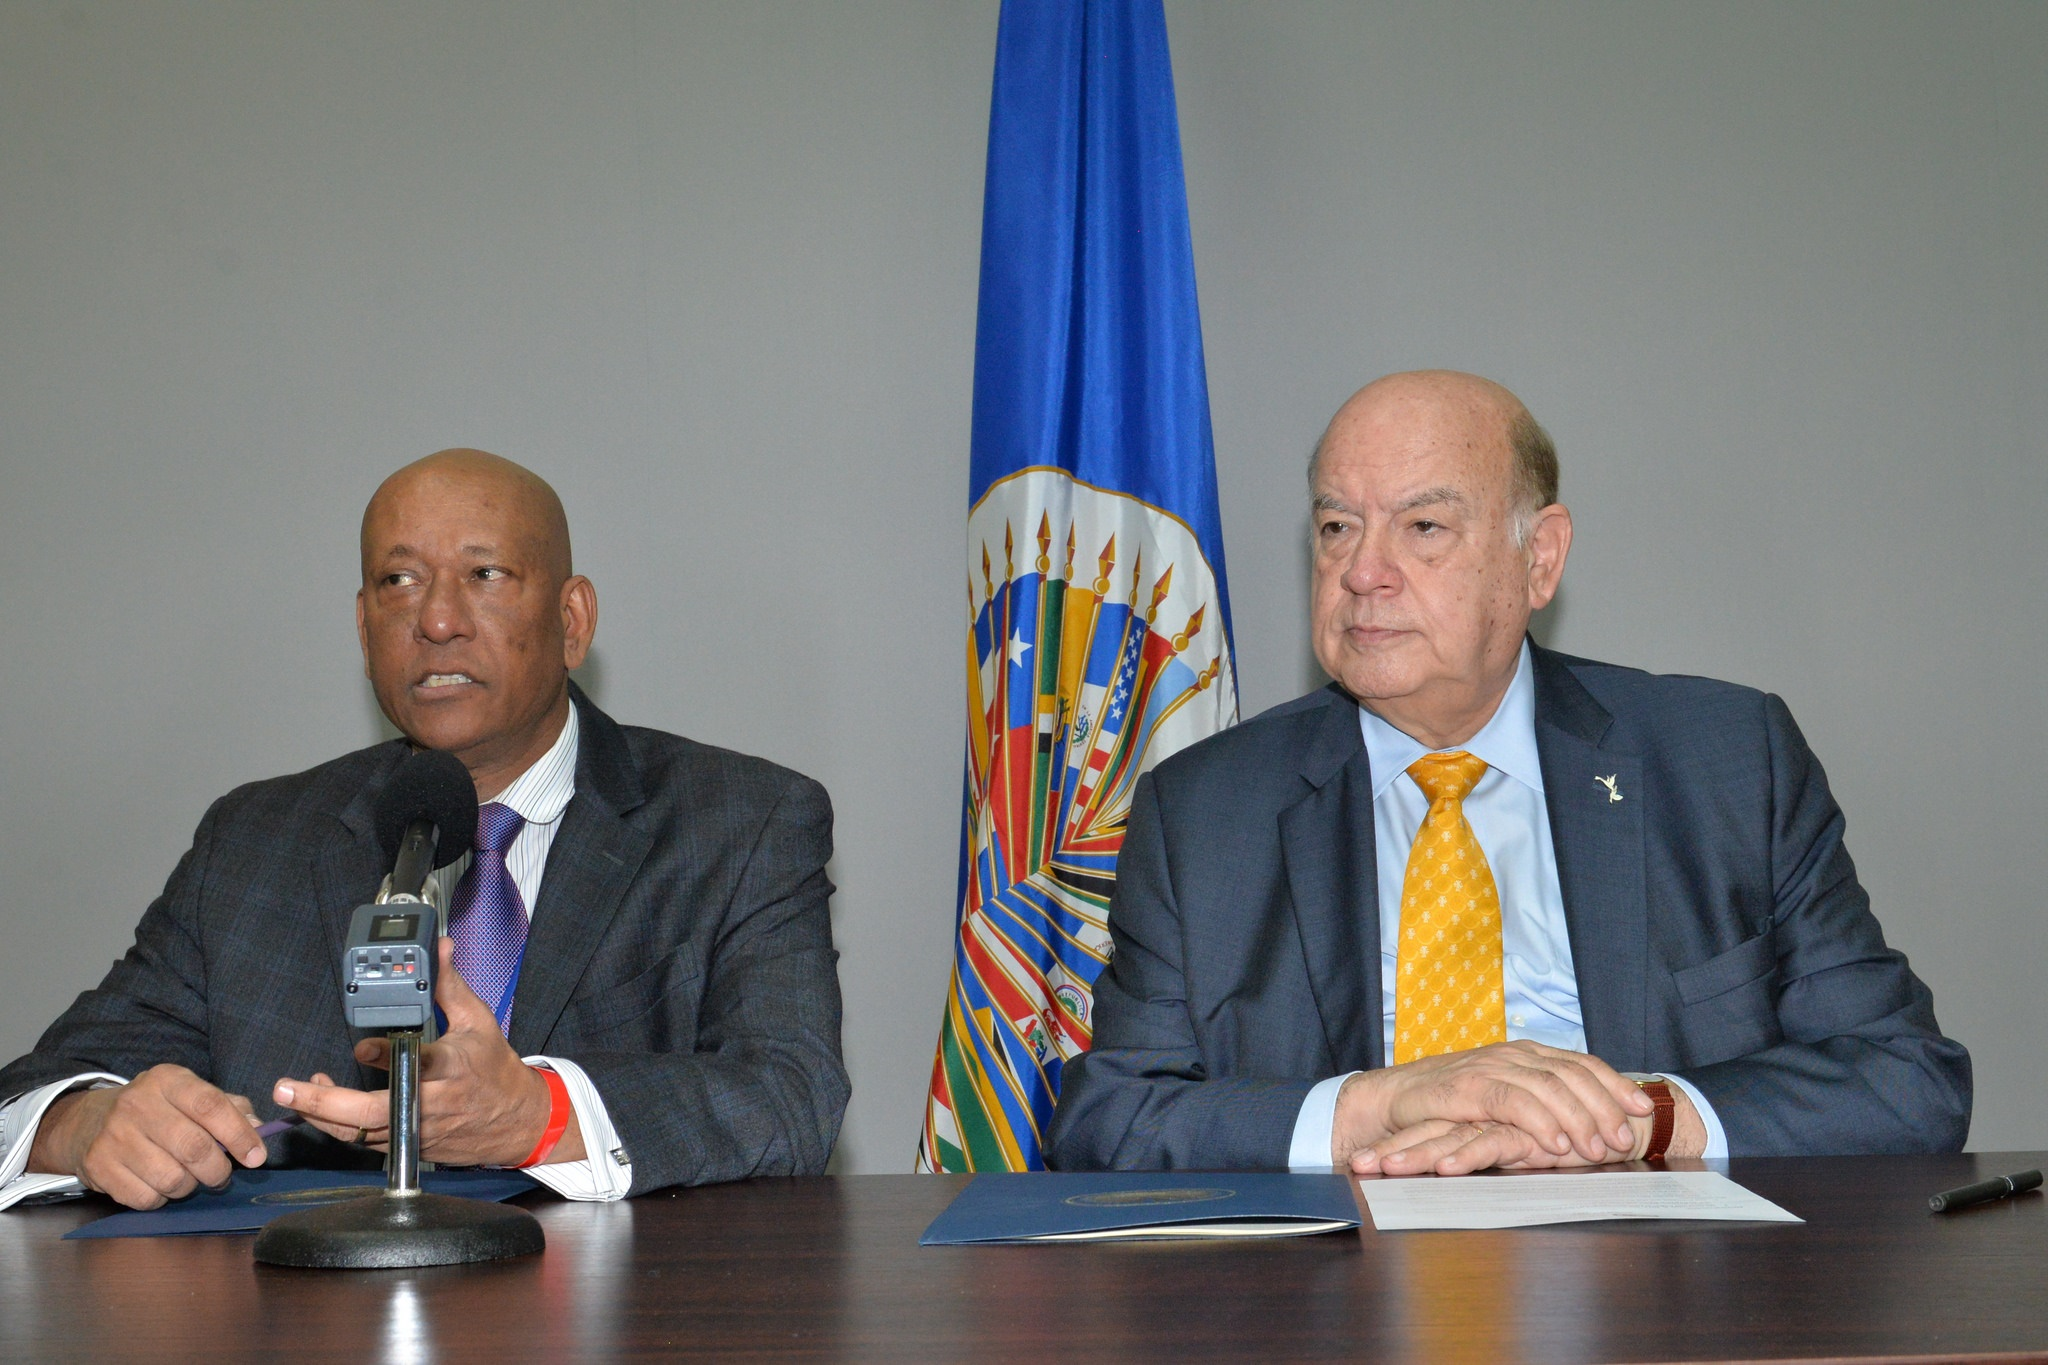 Secretary General of the Organisation of American States (OAS), José Miguel Insulza (right), and the Permanent Representative of Guyana to the Organisation, Bayney Karran (OAS photo)